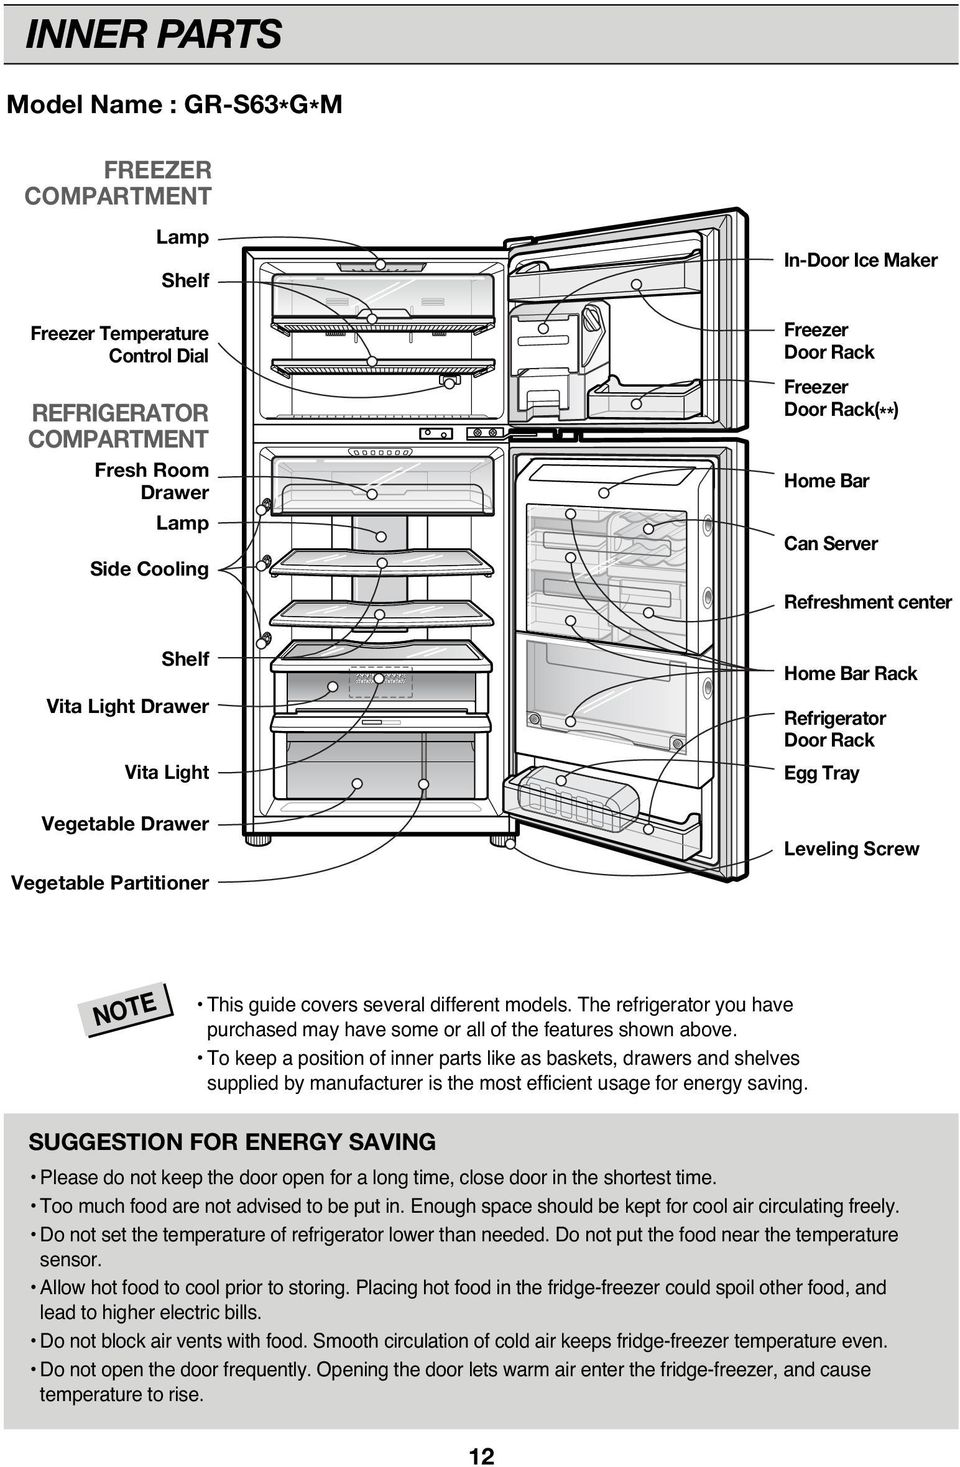 NOTE This guide covers several different models. The refrigerator you have purchased may have some or all of the features shown above.